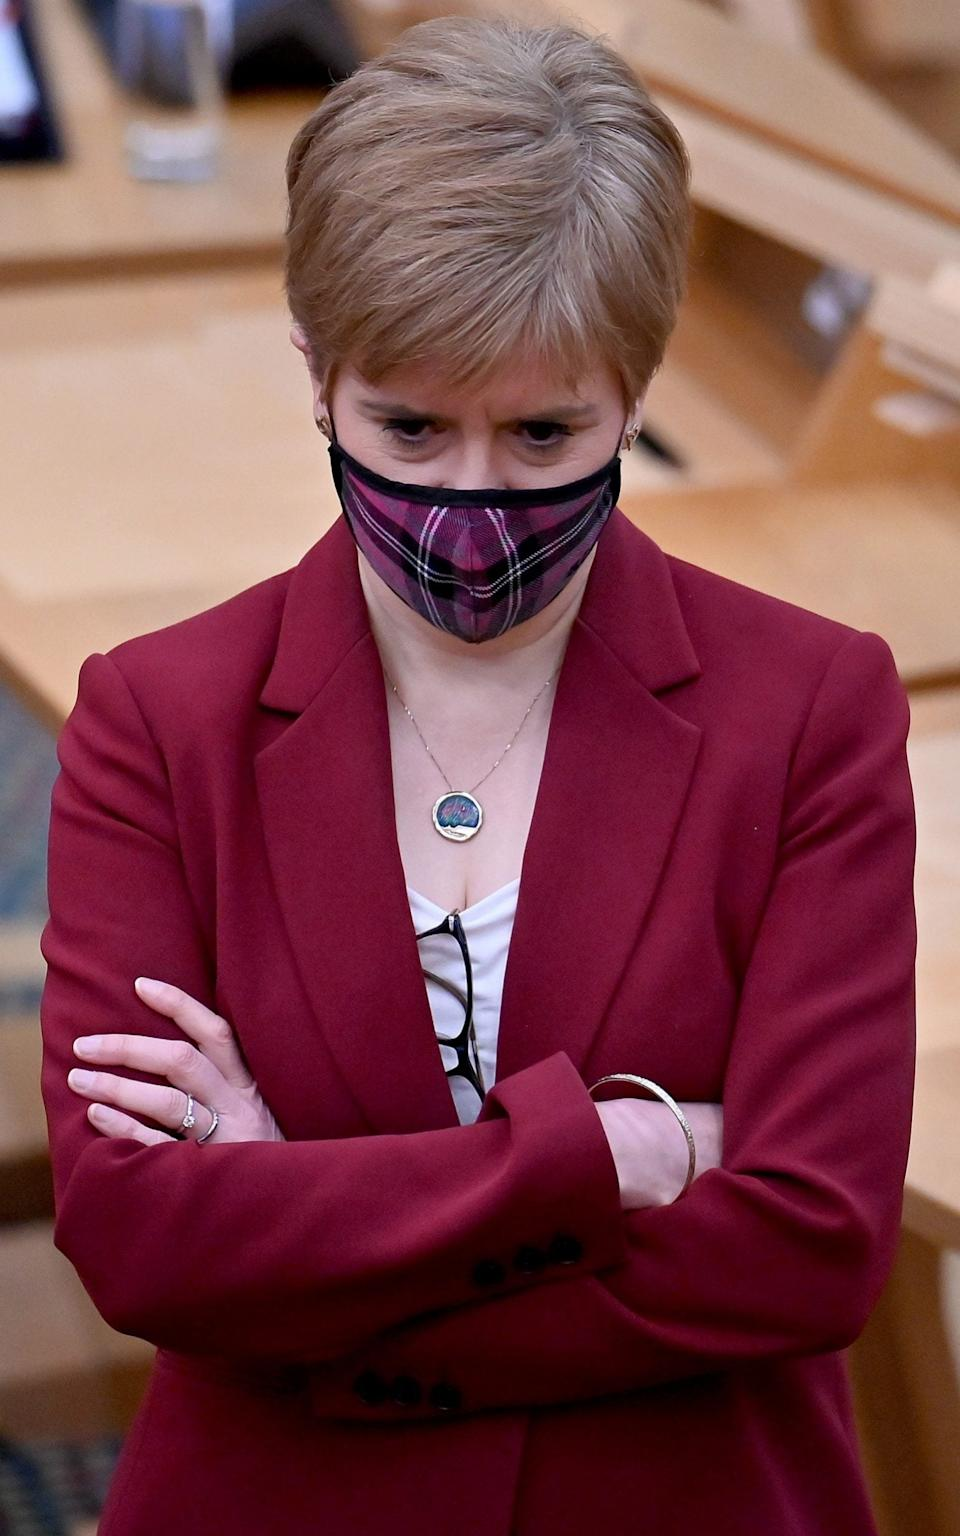 Nicola Sturgeon issued the warning to Christmas shoppers on Friday - Jeff J Mitchell/PA